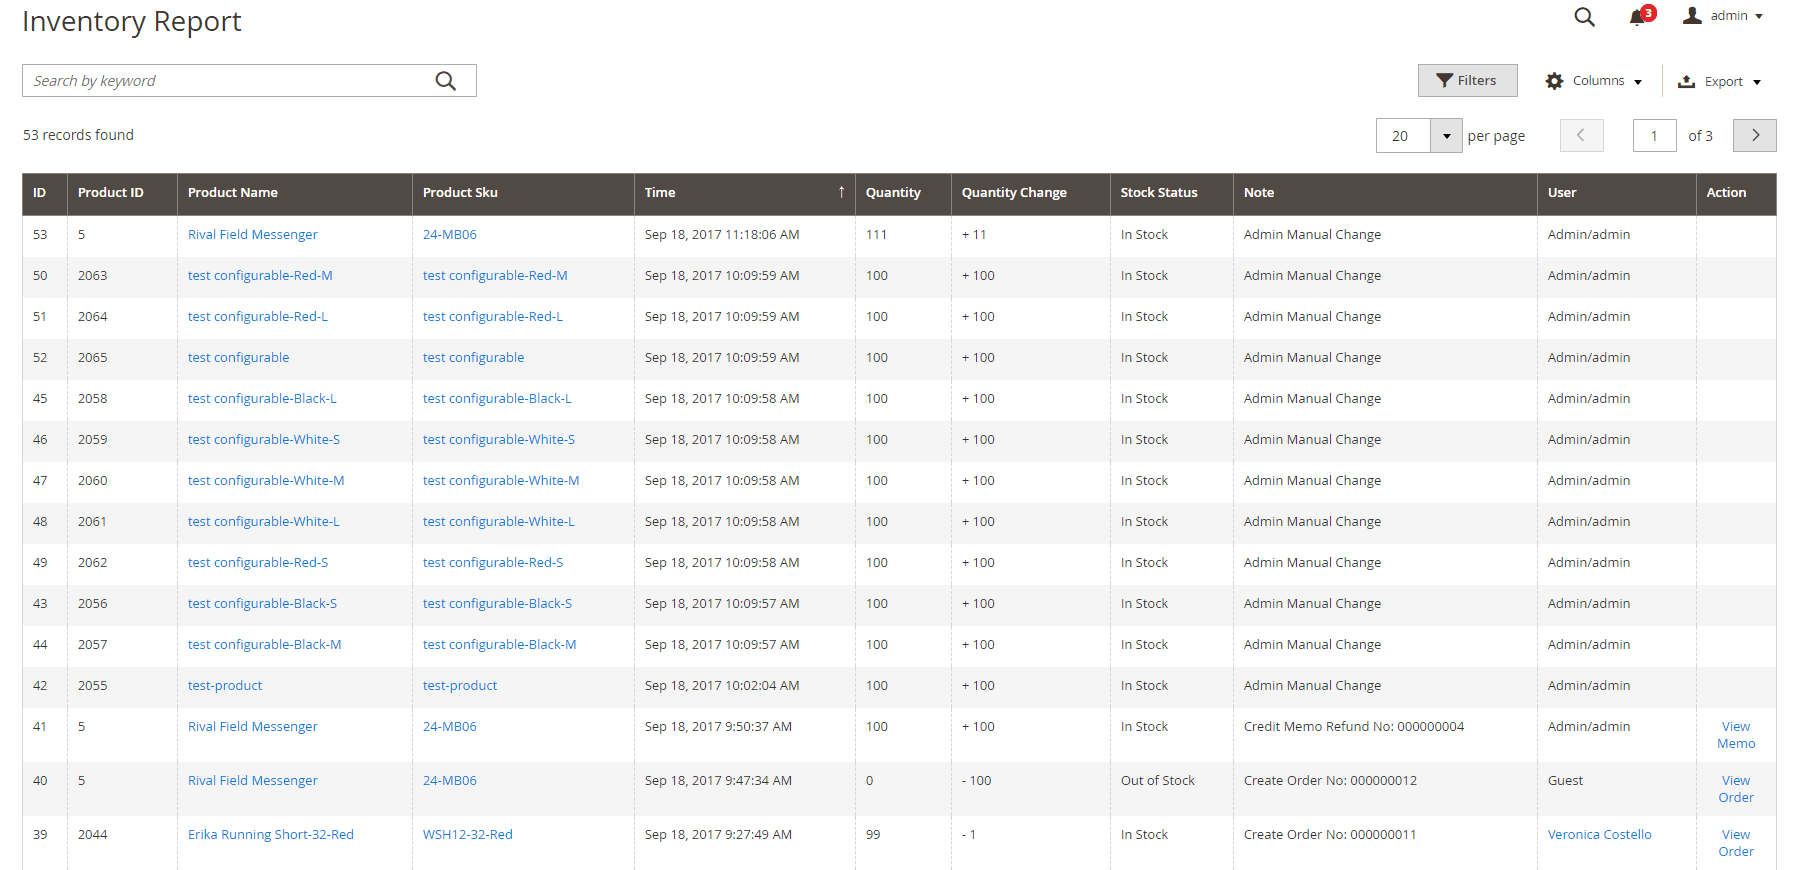 Inventory Report for all products